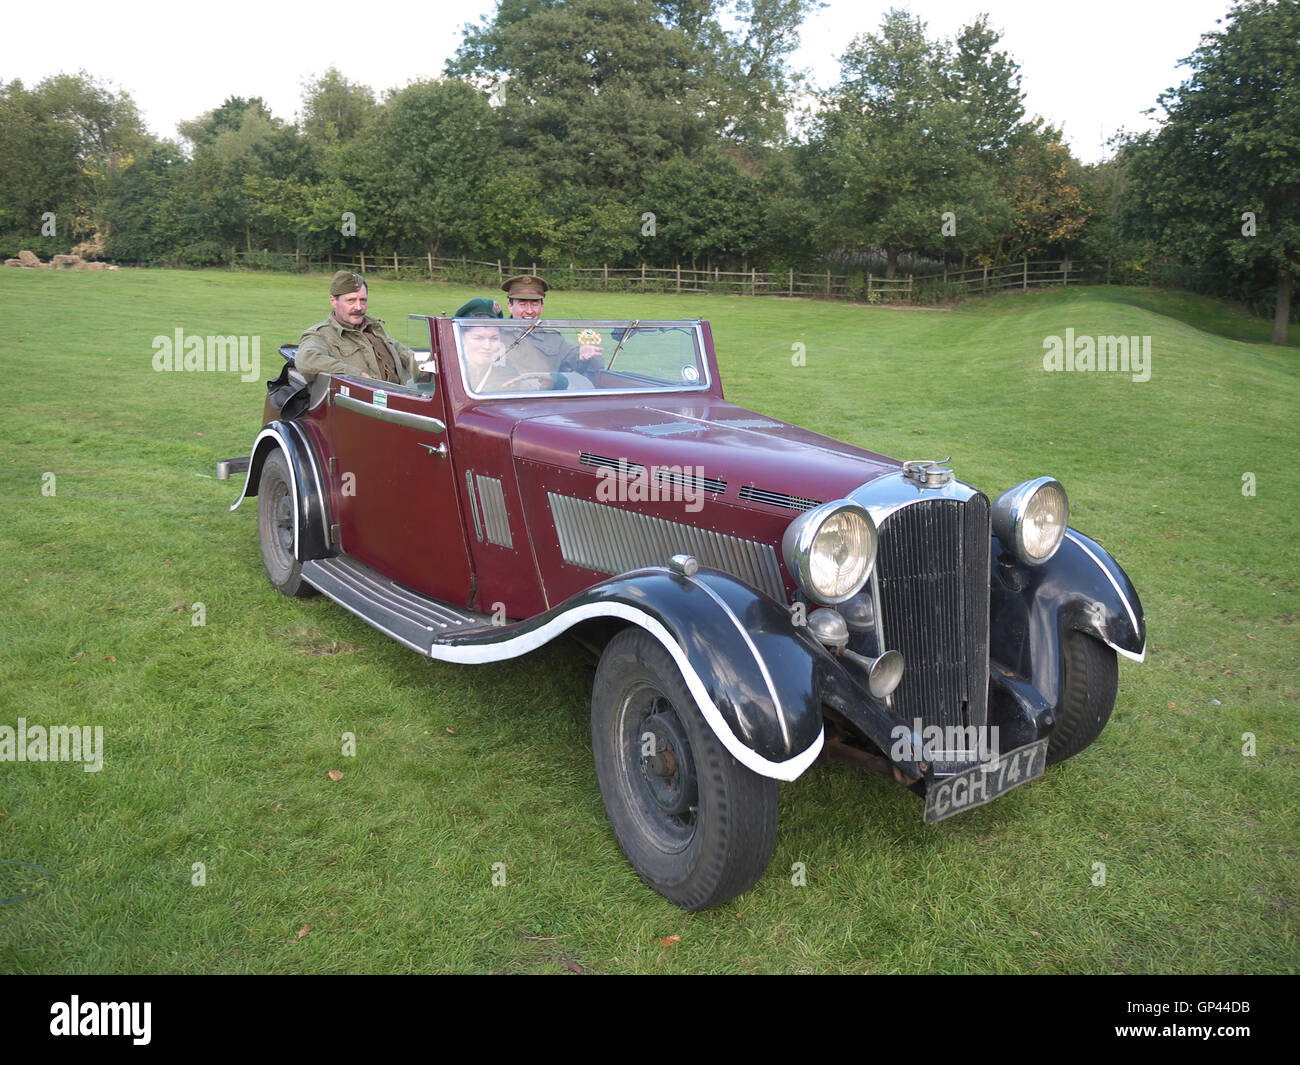 Vintage car on display at Rufford Abbey - Stock Image